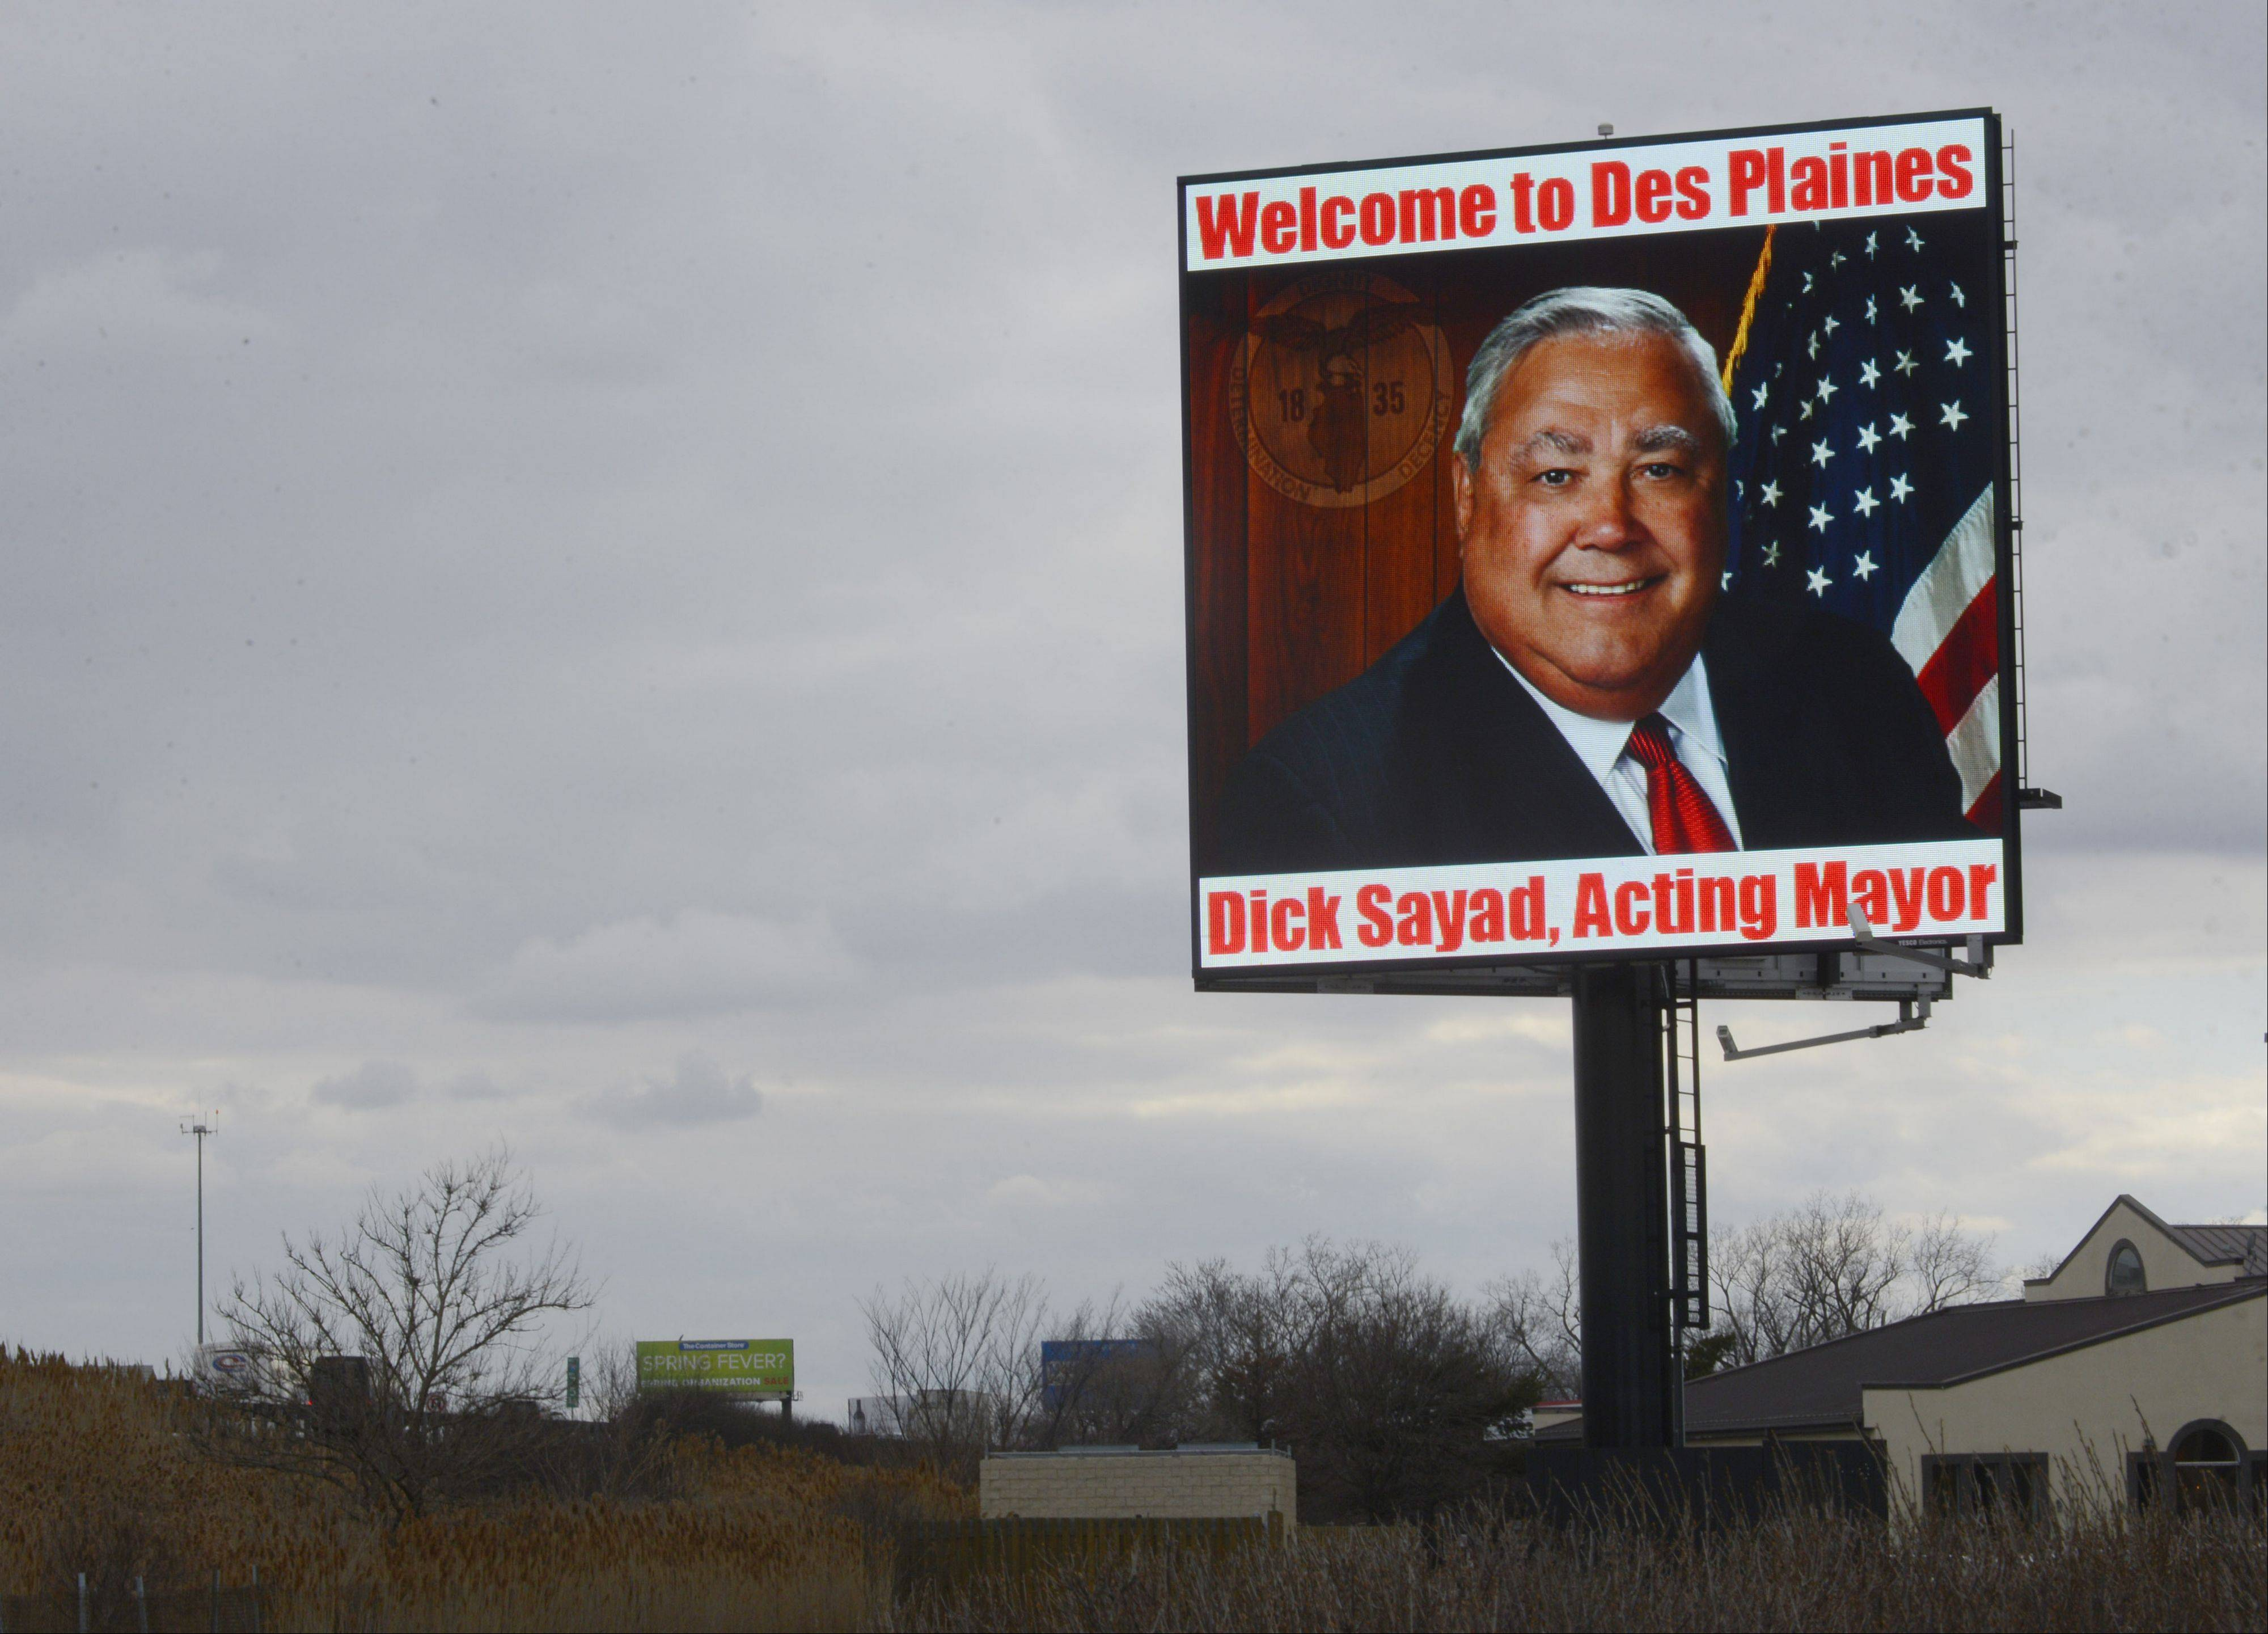 JOE LEWNARD/jlewnard@dailyherald.comA lighted billboard which can be seen by motorists traveling on the westbound Jane Addams Tollway includes a message from acting Des Plaines Mayor Dick Sayad welcoming them to Des Plaines. Sayad holds the job for seven weeks.